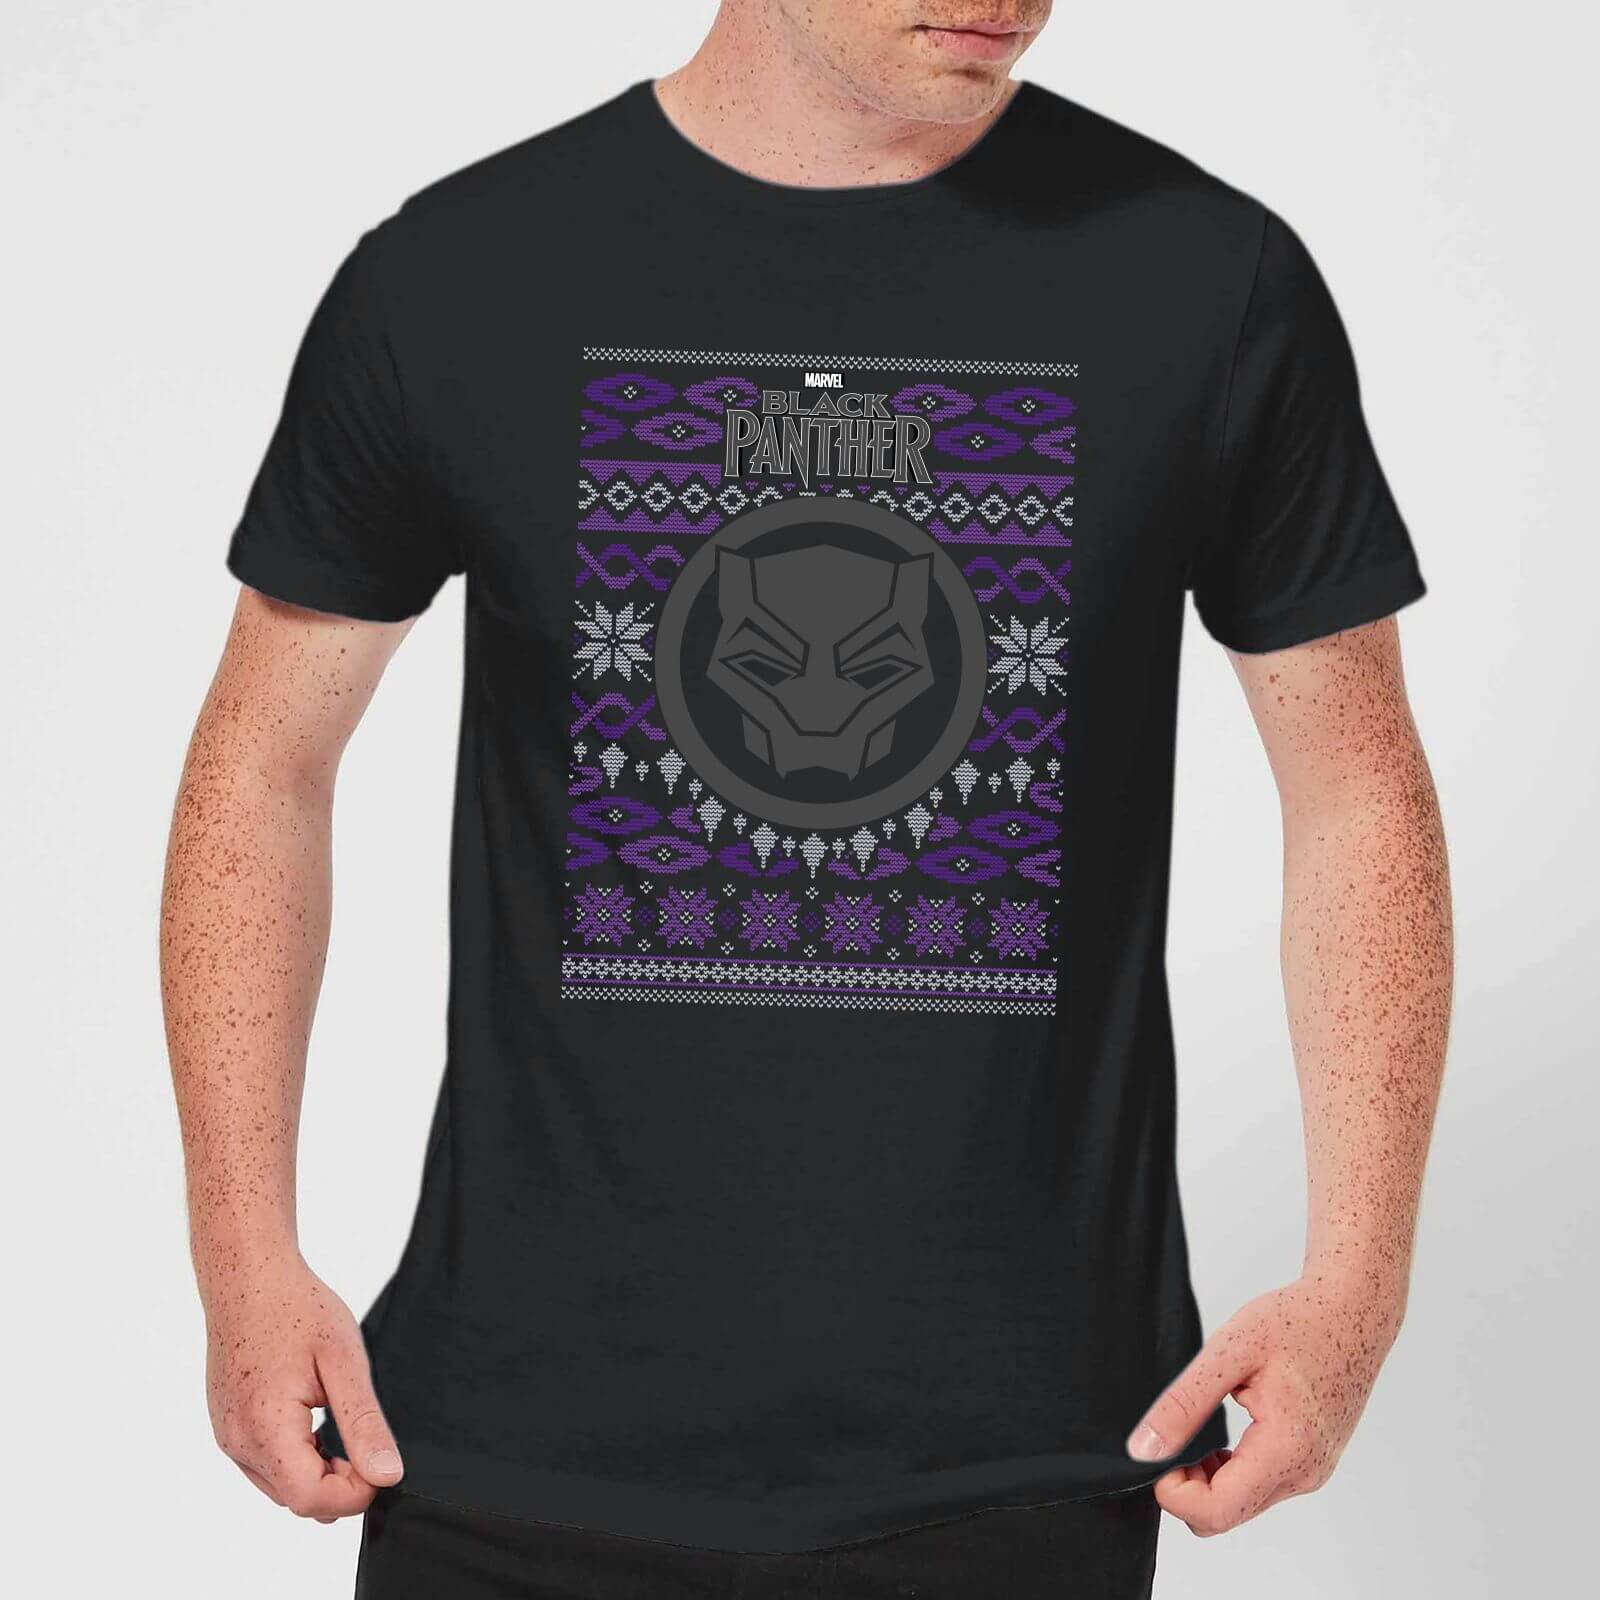 84c223b5 Marvel Avengers Black Panther Men's Christmas T-Shirt - Black Clothing |  Zavvi